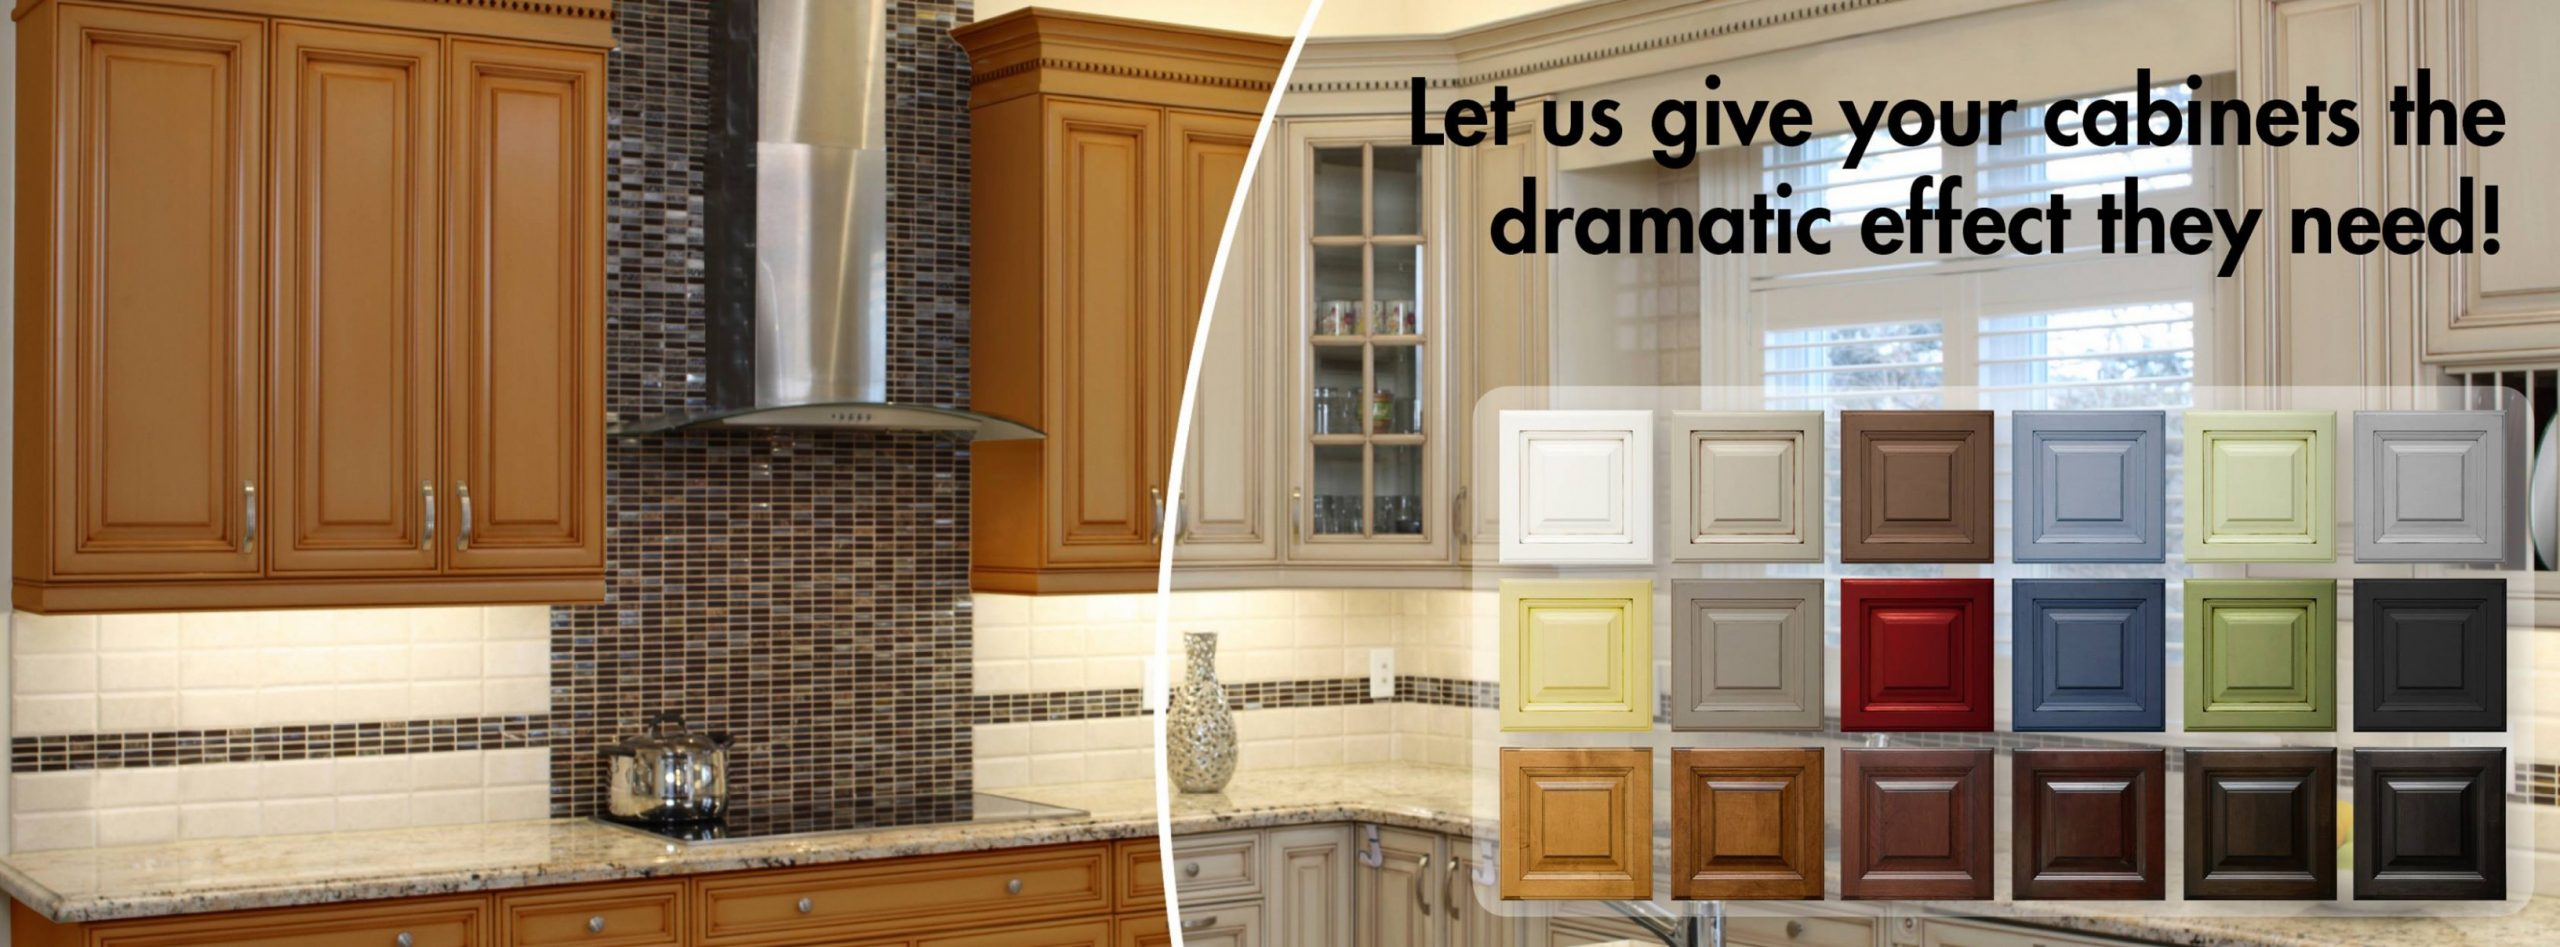 Gold Standard In Kitchen Cabinets Painting Refinishing Refacing  - Kitchen Cabinet Refacing Niagara Falls